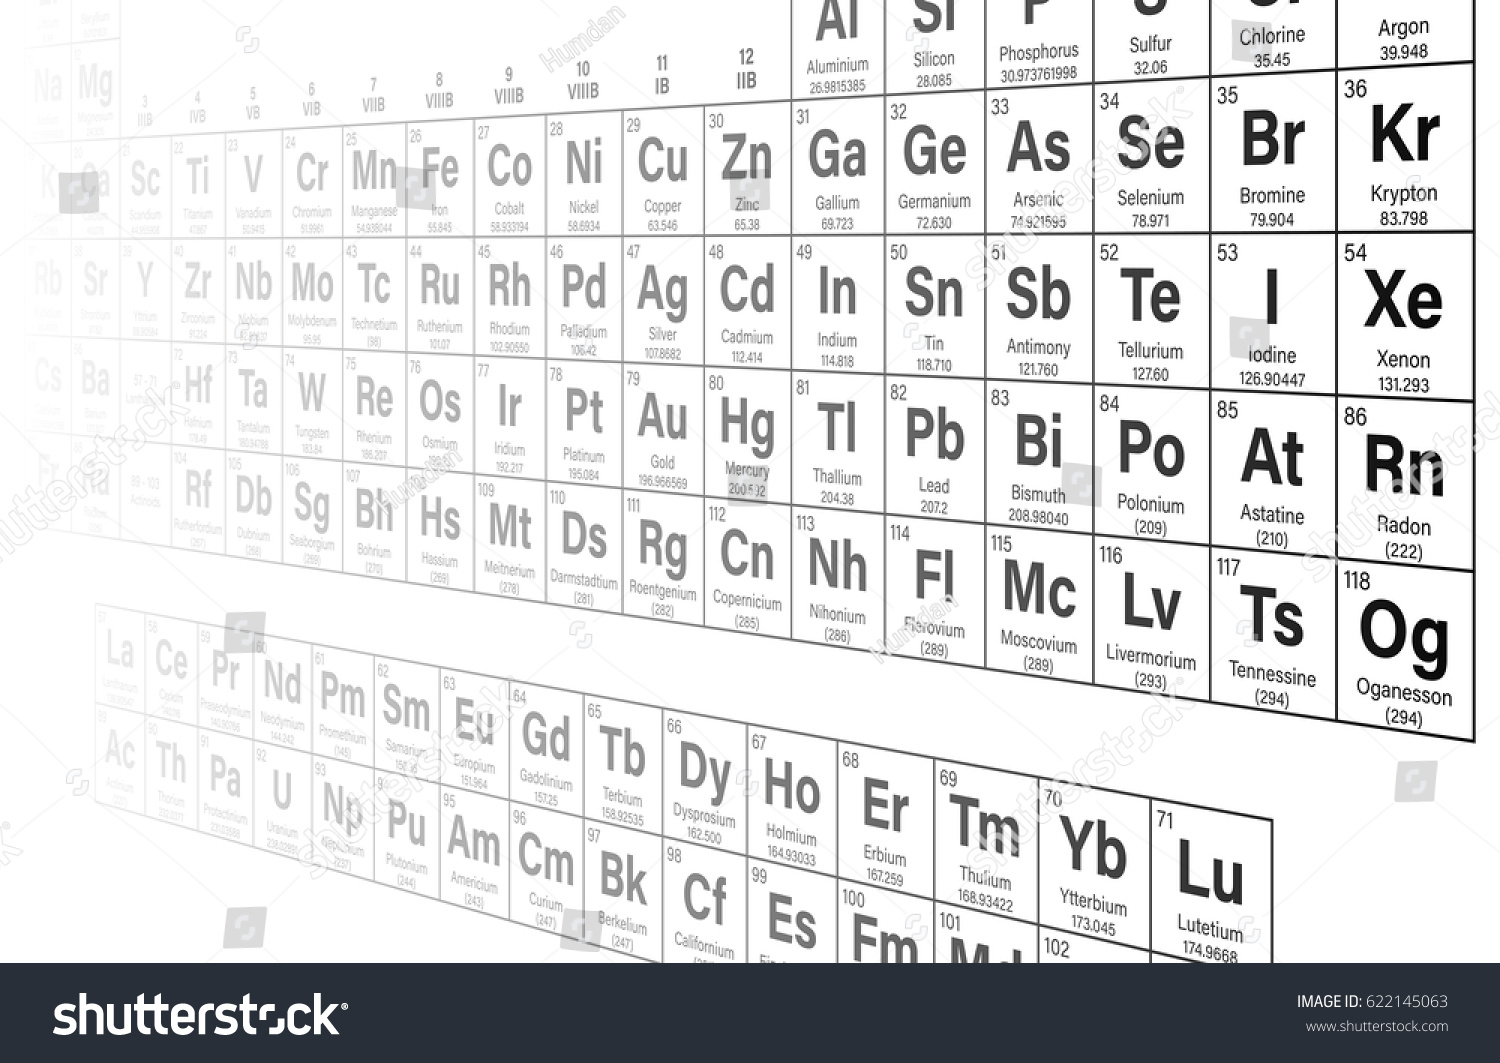 Periodic table elements vector illustration shows stock photo photo periodic table of the elements vector illustration shows atomic number symbol name and urtaz Image collections